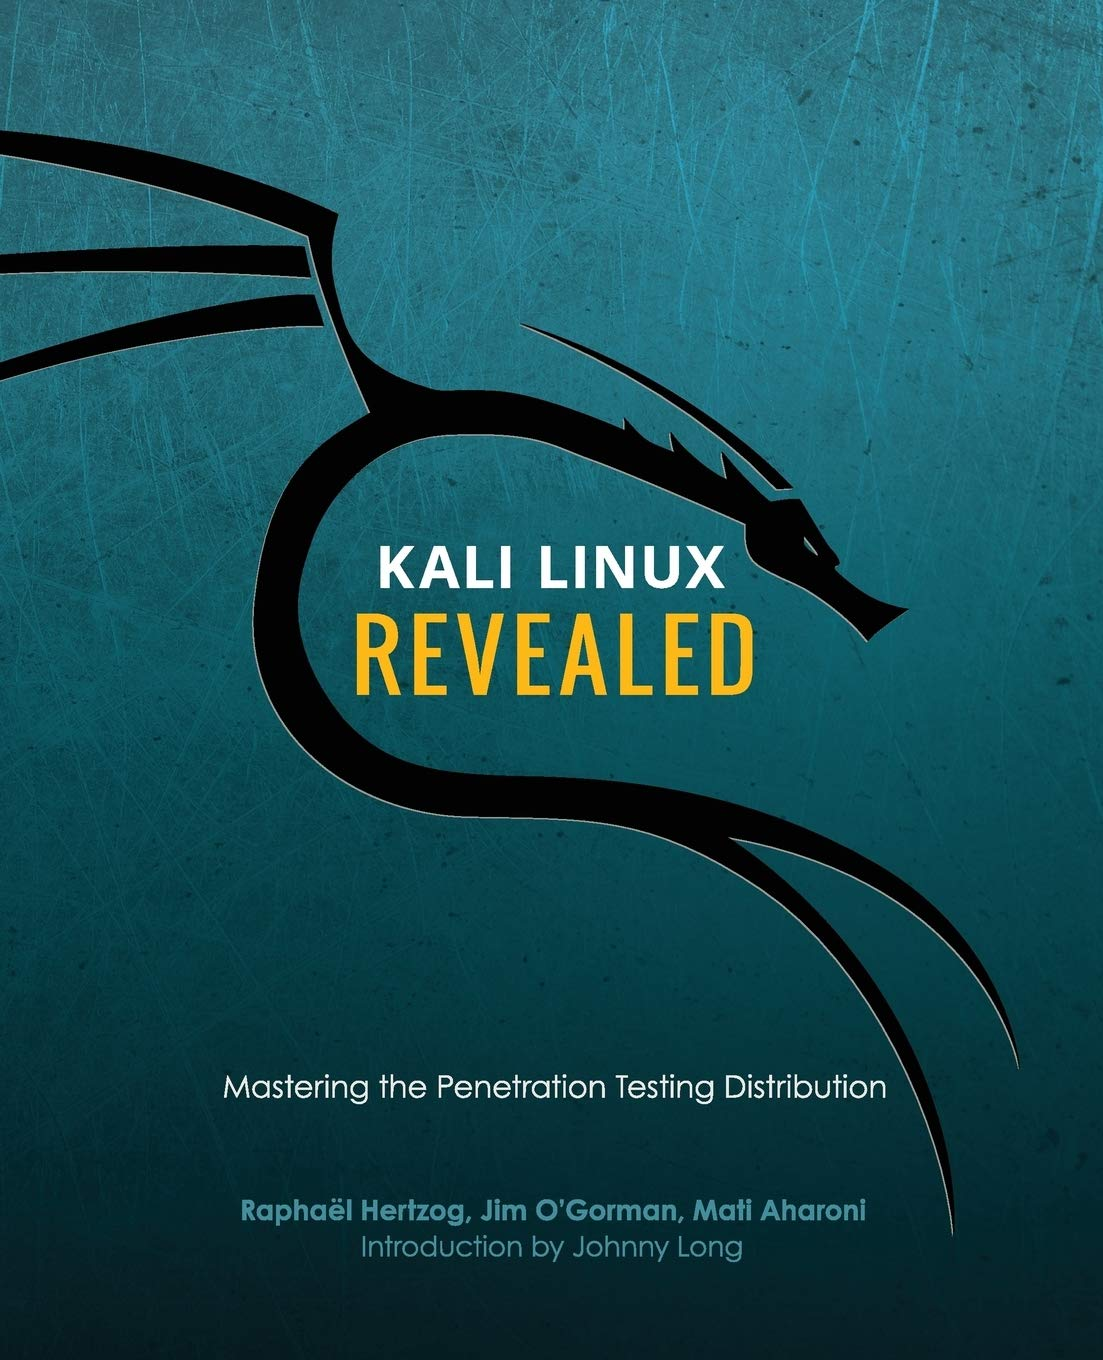 Kali Linux Revealed: Mastering the Penetration Testing Distribution by Offsec Press